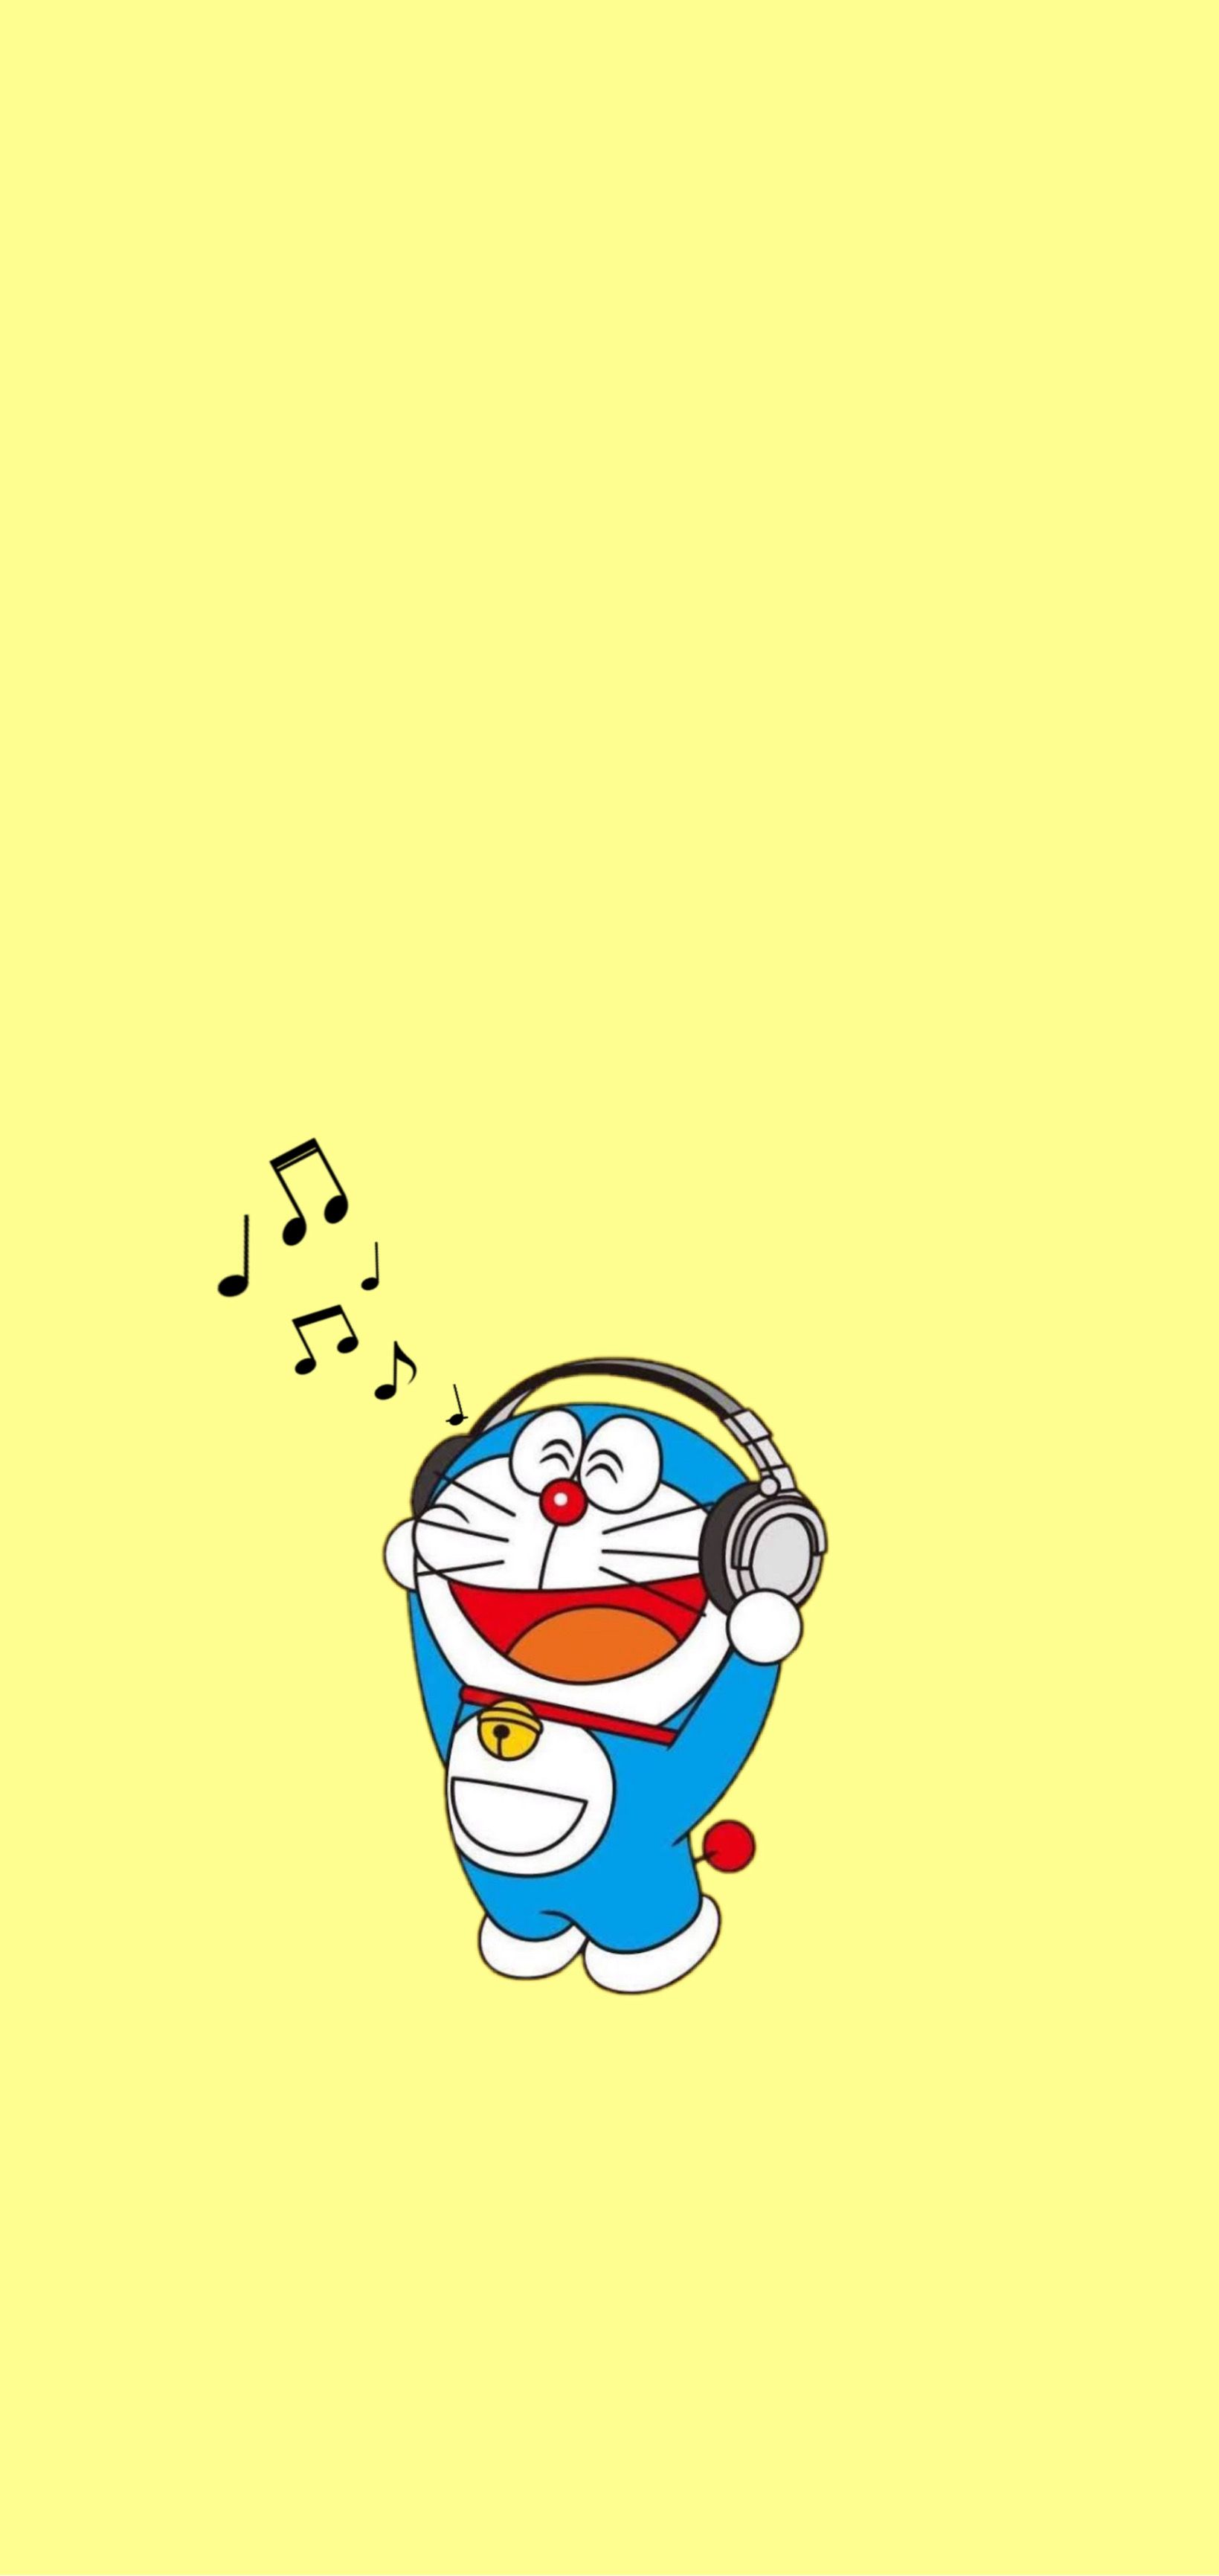 Doraemon Wallpaper Lockscreen Aesthetic Pastel Di 2020